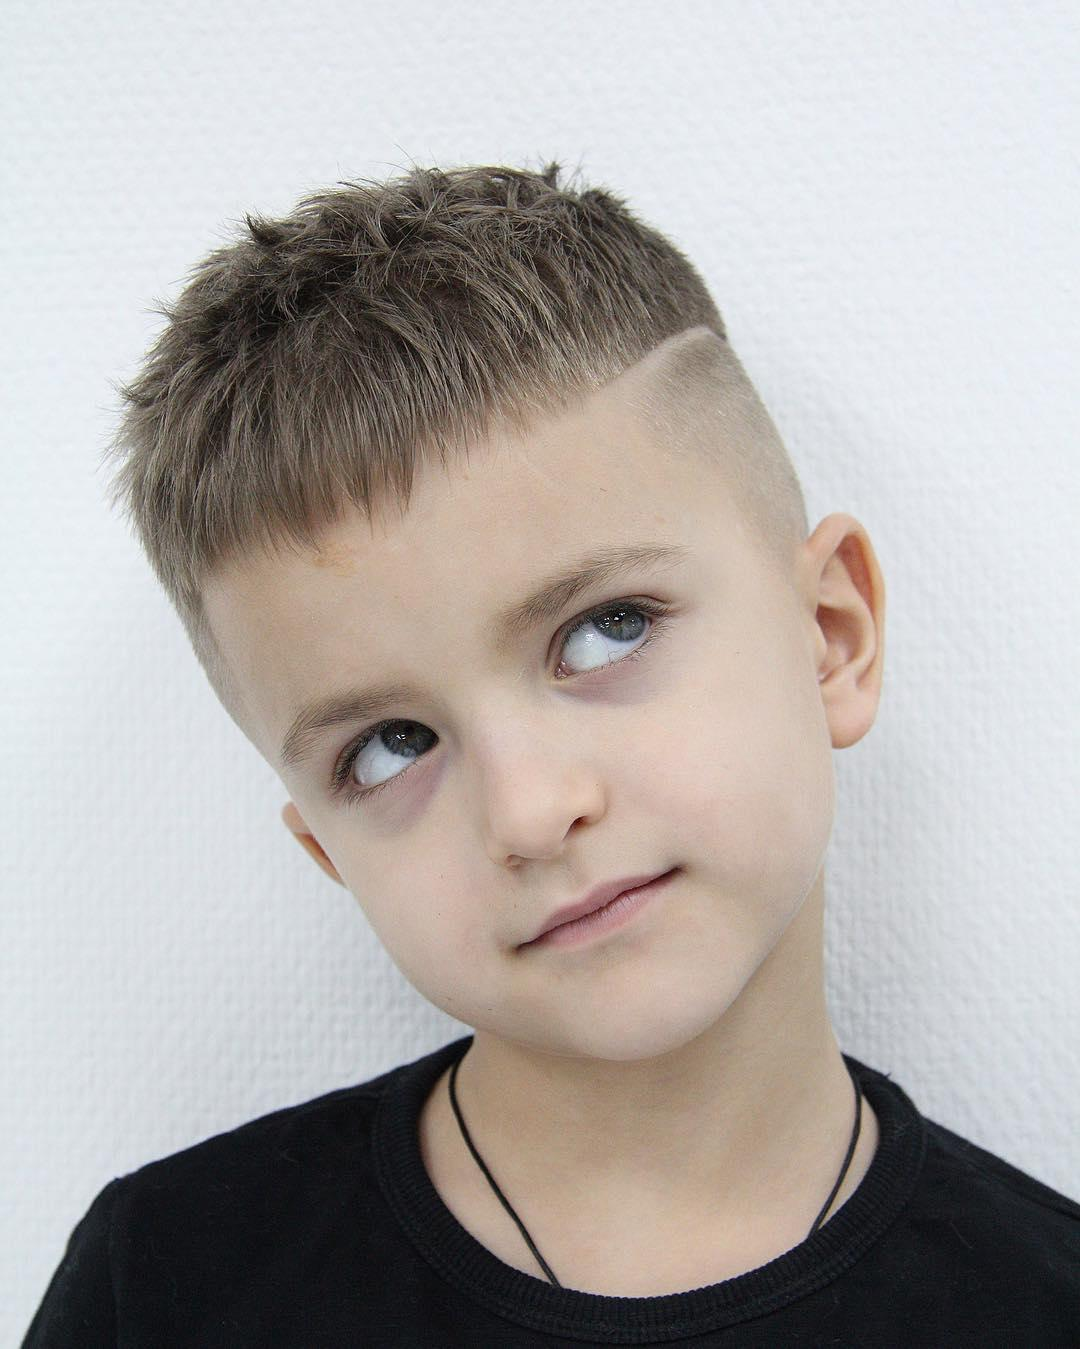 Little Boys Haircuts to Transform Your Boy's Looks